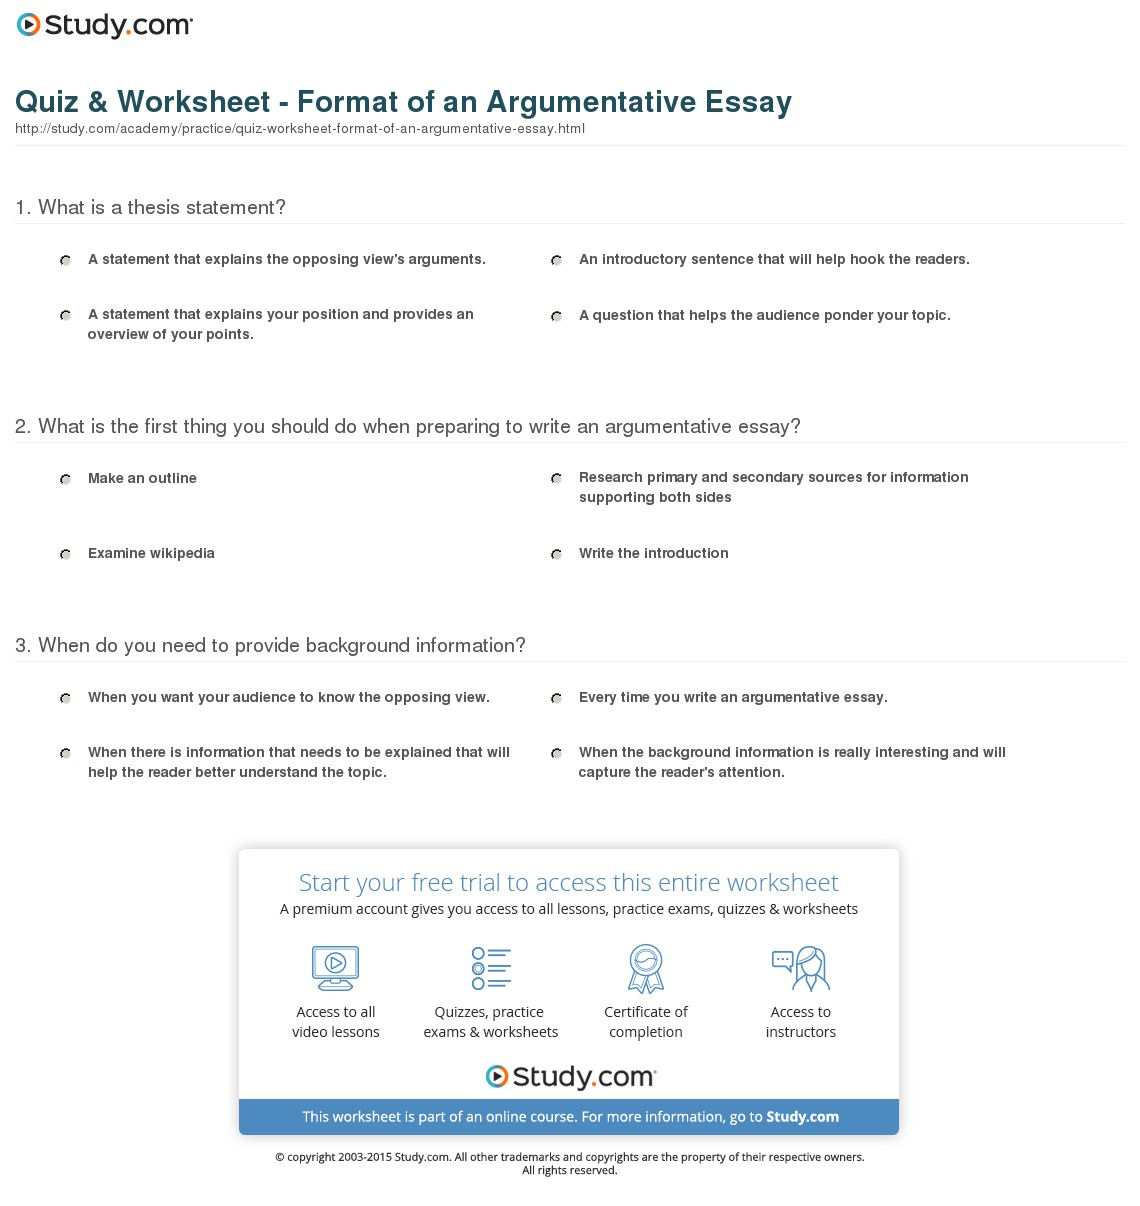 004 Essay Example Quiz Worksheet Format Of An Argumentative Fearsome Definition Wikipedia Define & Examples Full